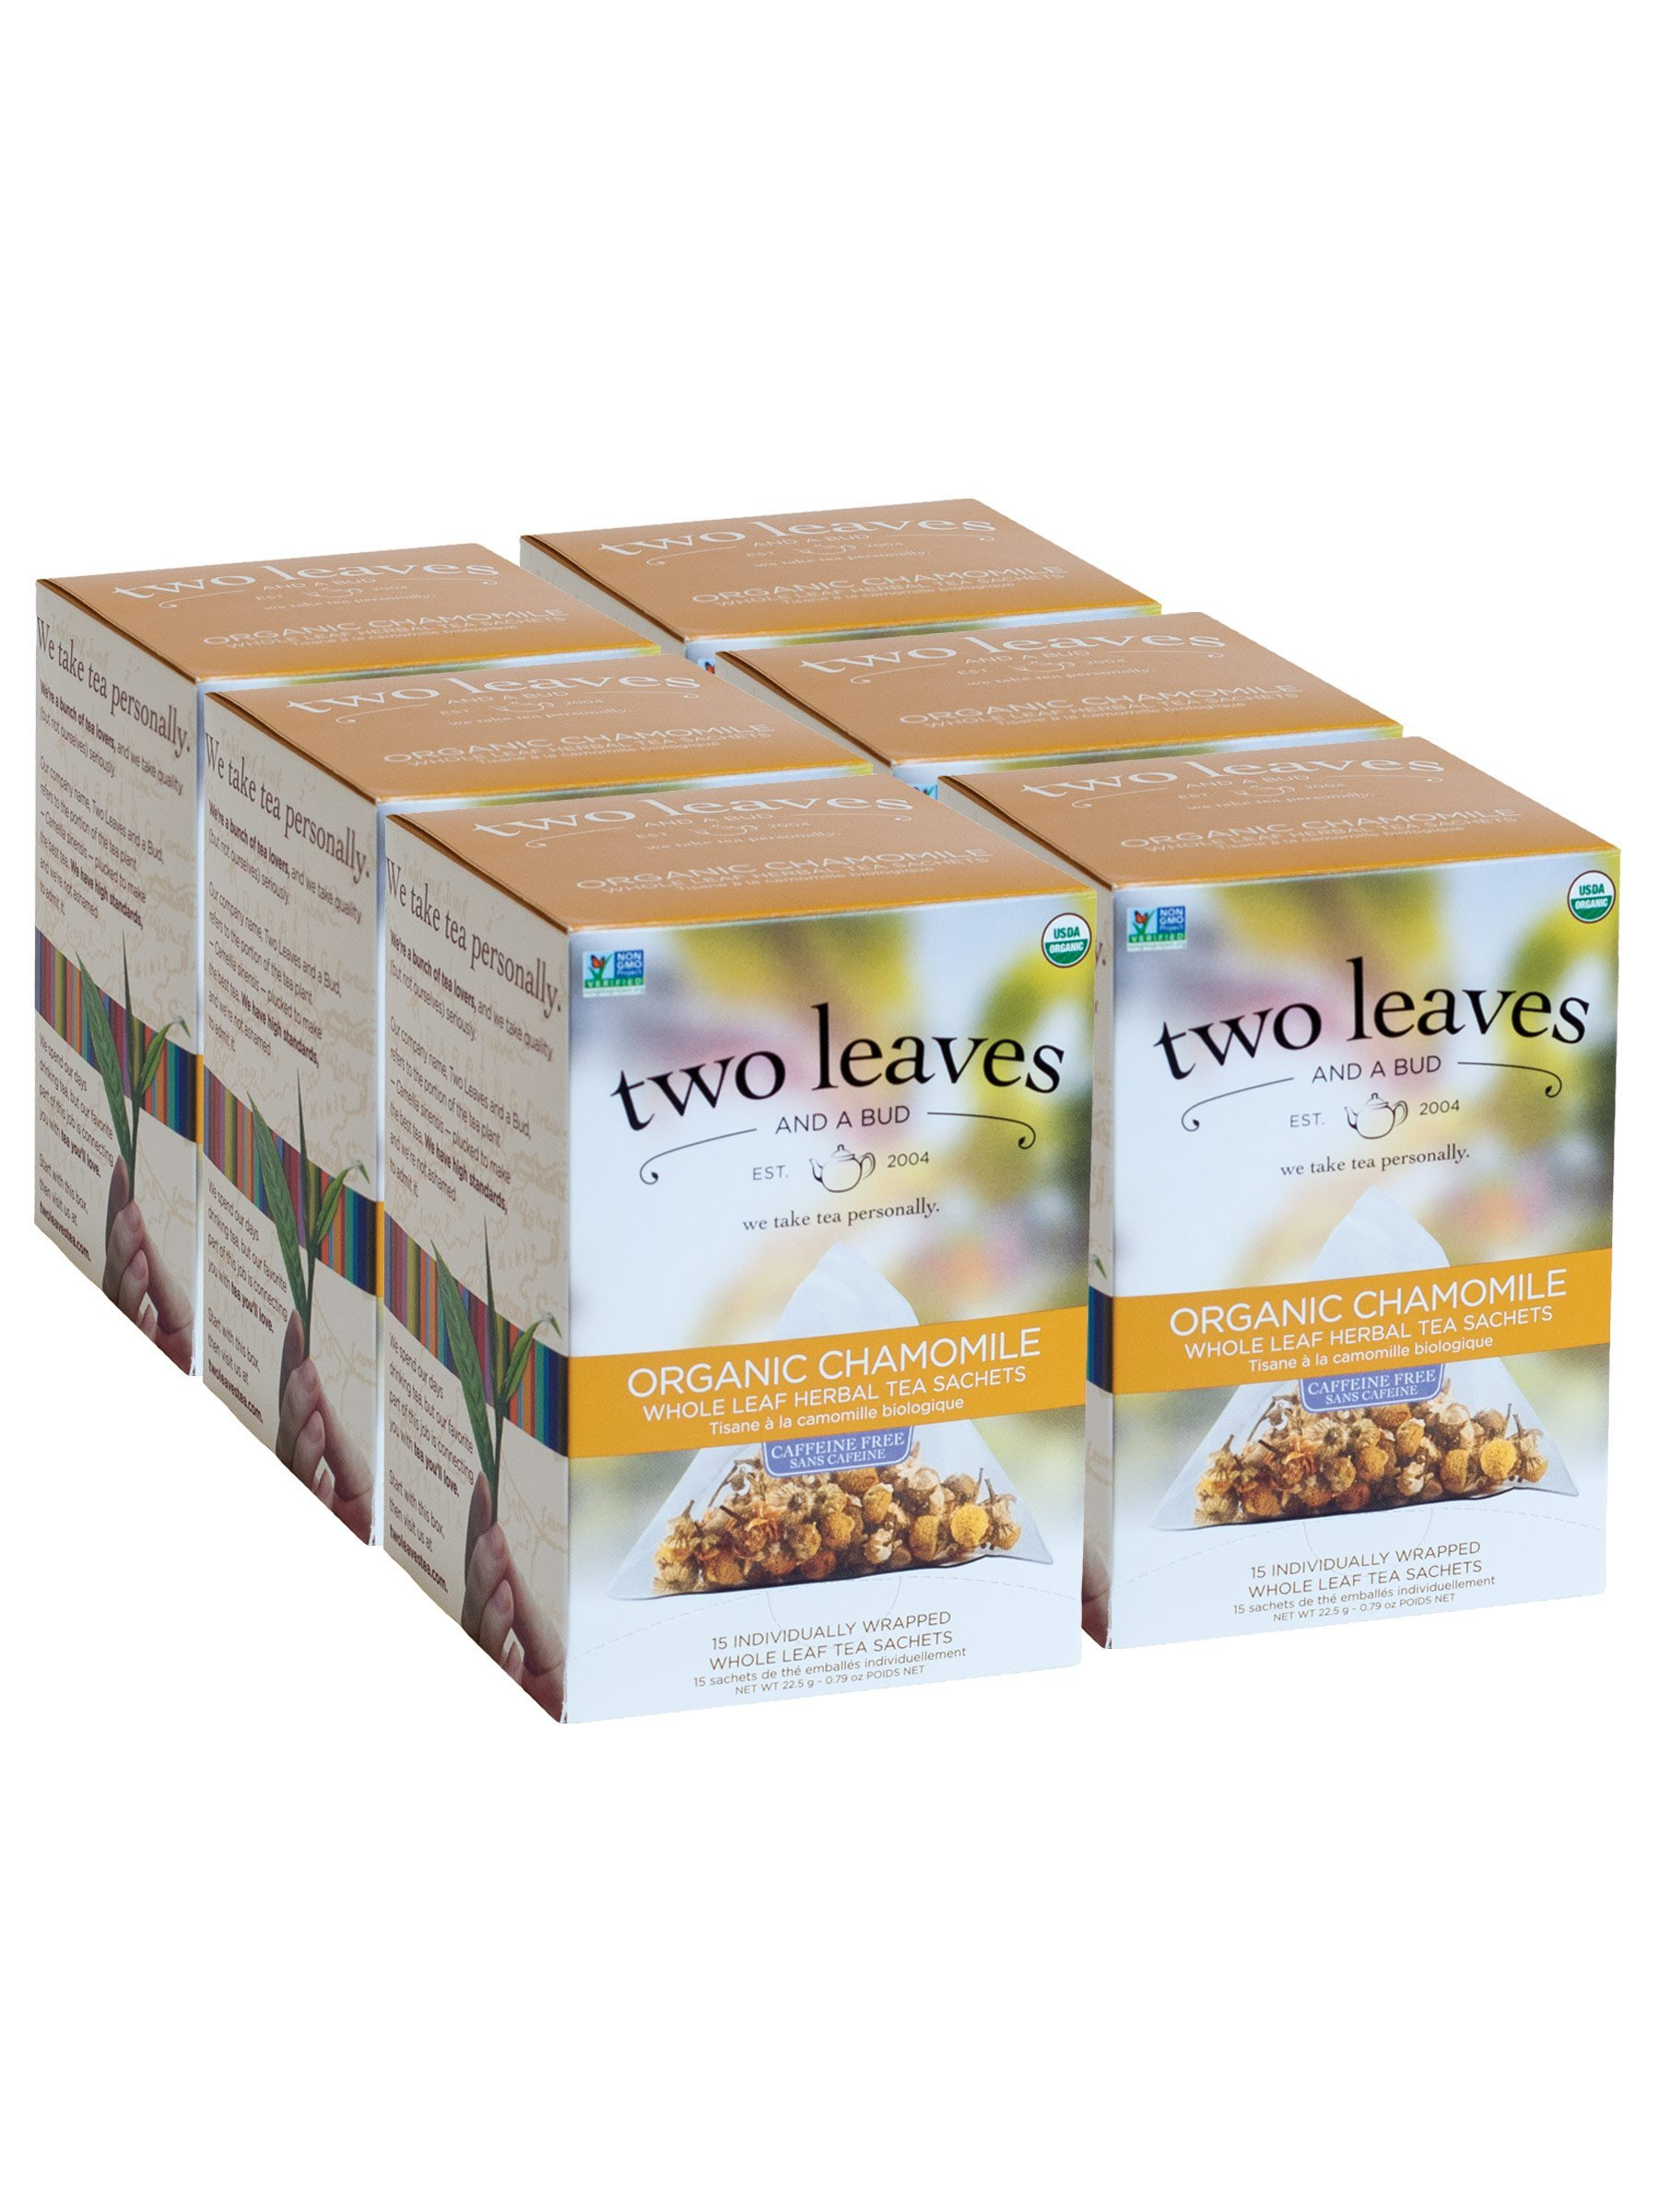 Two Leaves and a Bud Organic Chamomile Herbal Tea Bags, 15 Count (Pack of 6) Organic Whole Leaf Caffeine Free Herbal Tea in Sachet Bags, Delicious Hot or Iced with Sugar or Honey or Plain by Two Leaves and a Bud